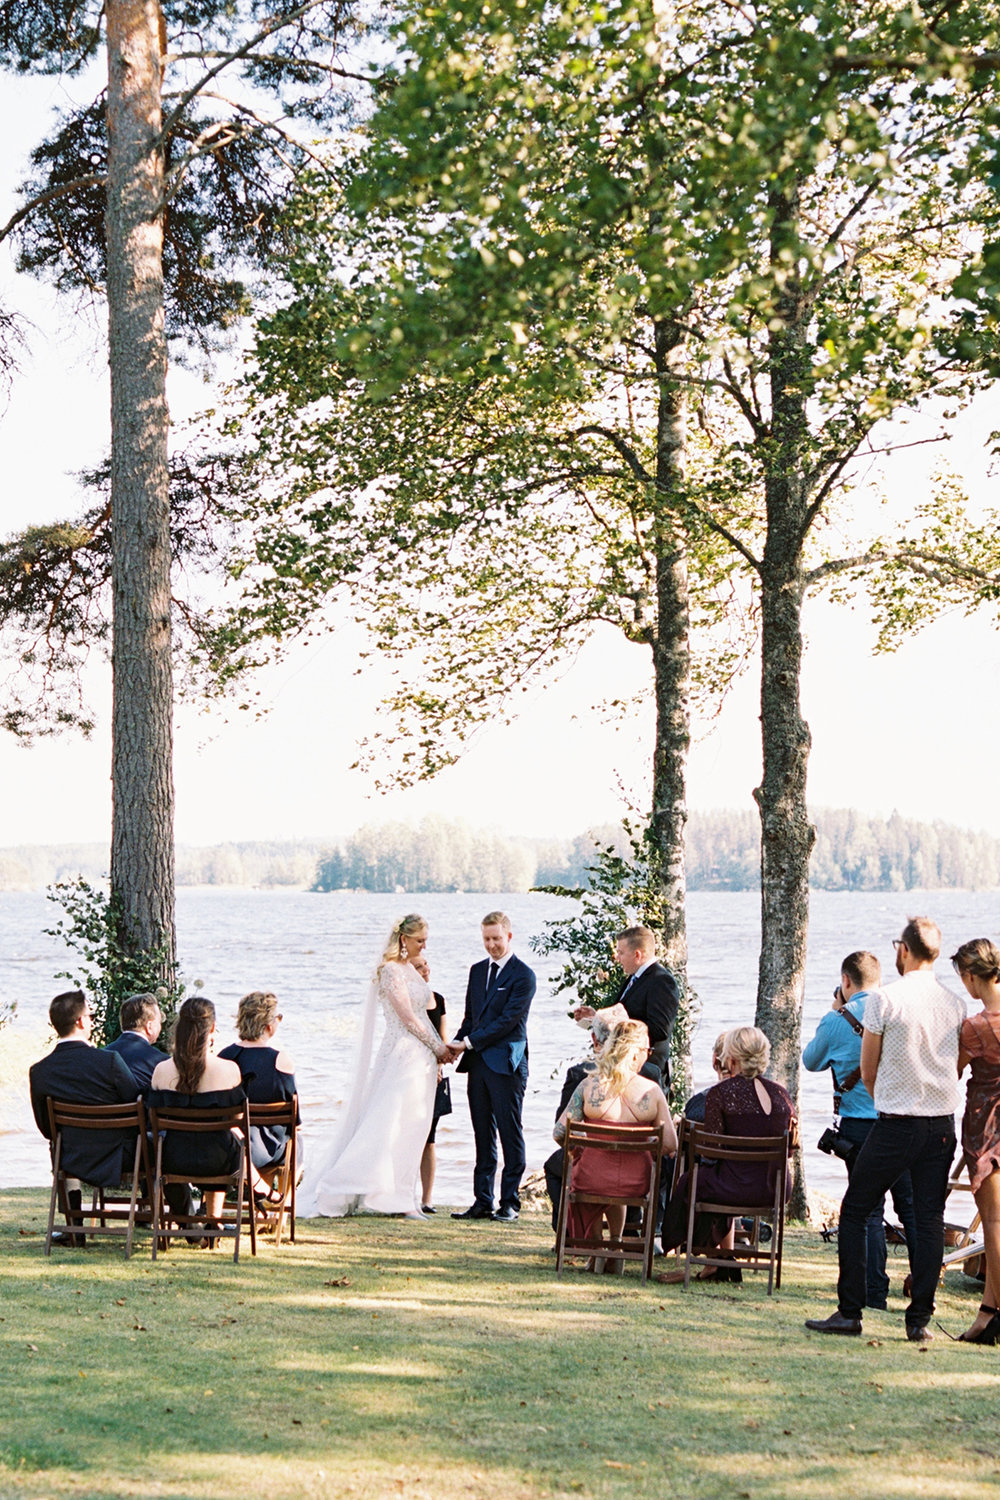 Jess & Jason's Intimate Elopement Wedding in Finland